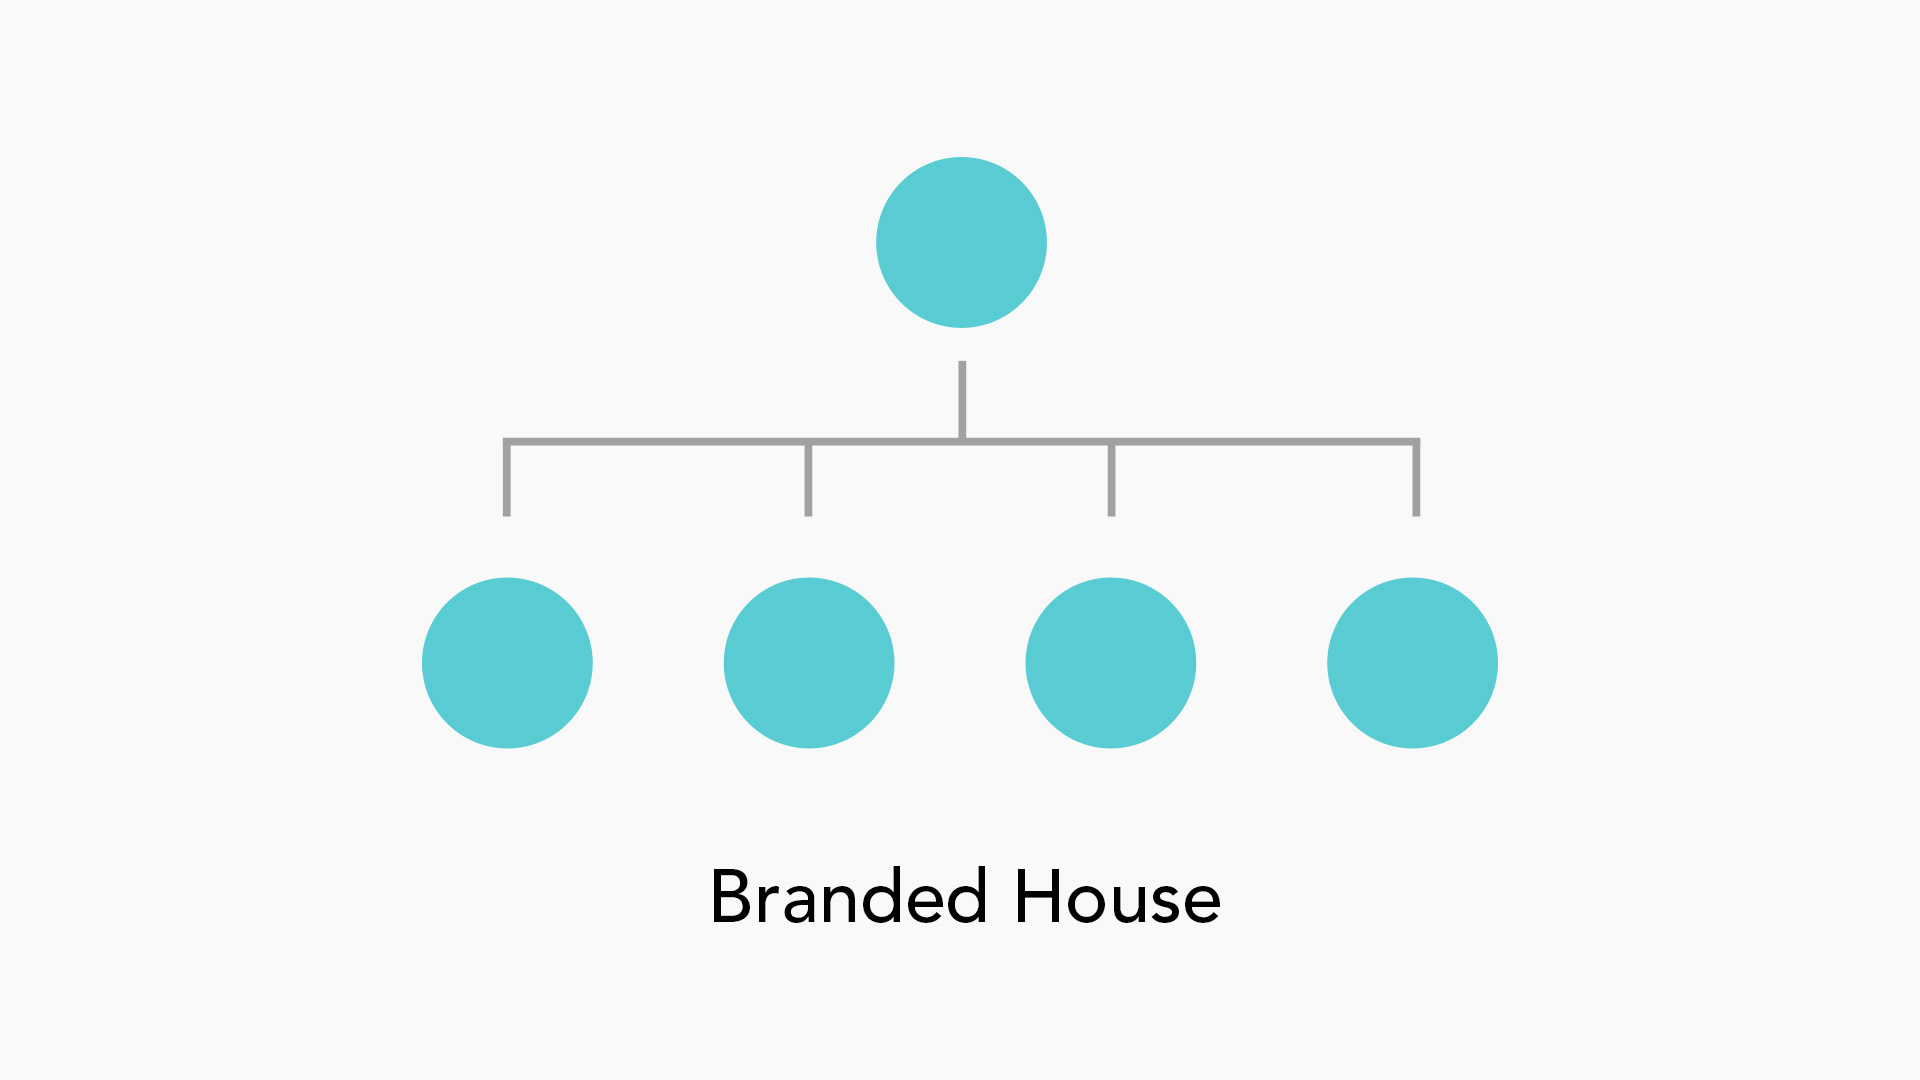 Branded House